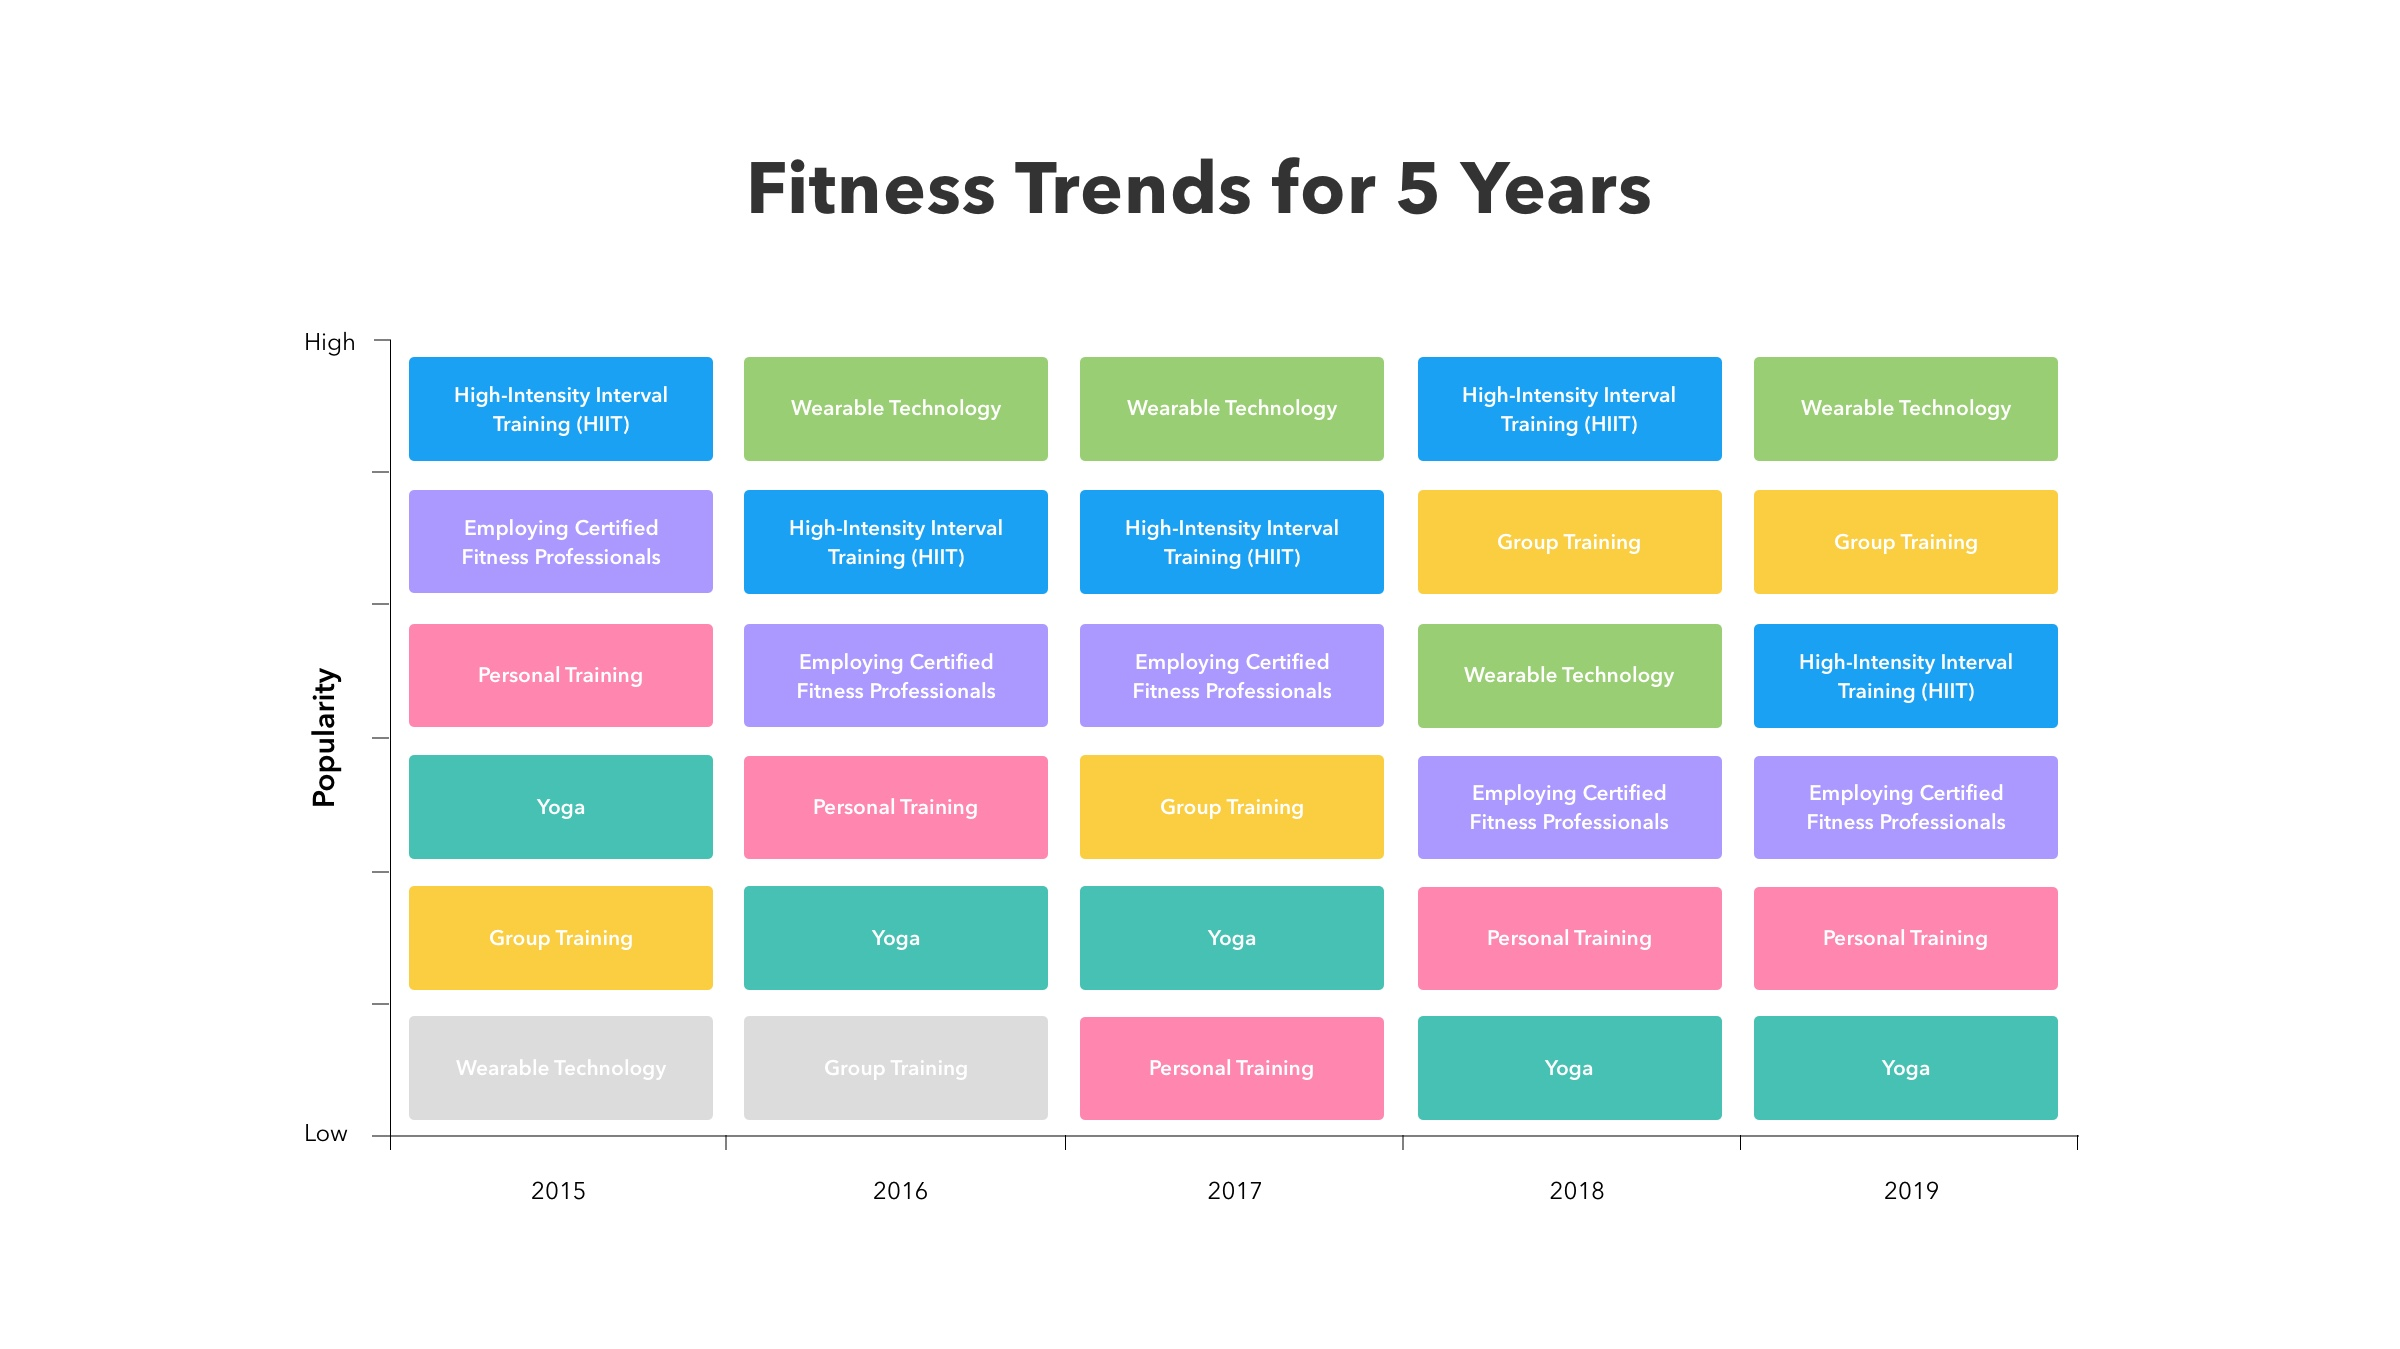 Fitness trends for 5 years to implement in a fitness app.